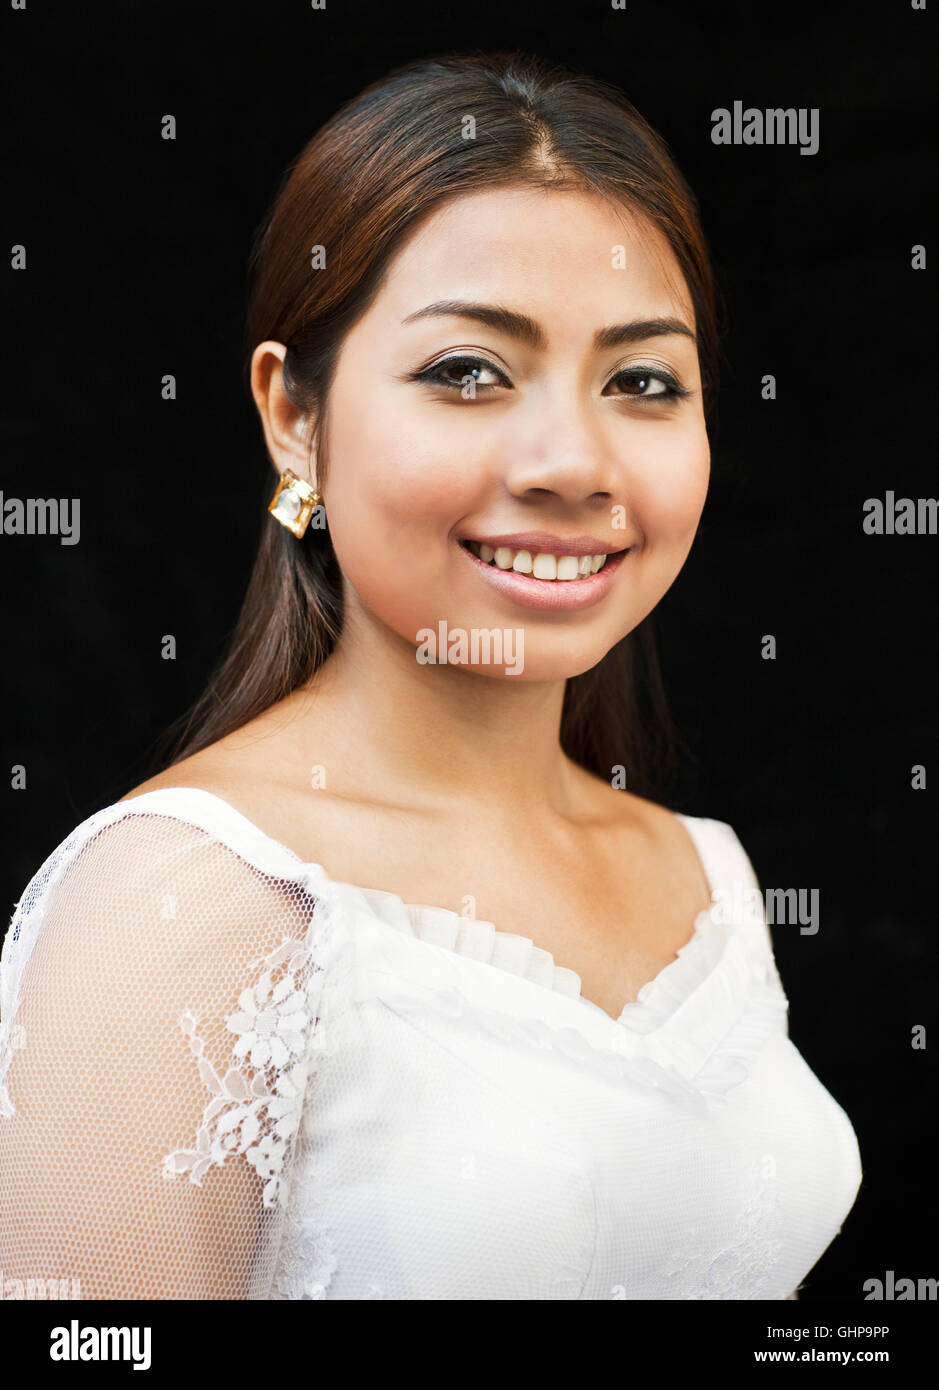 Protege Stock Photos & Protege Stock Images - Alamy